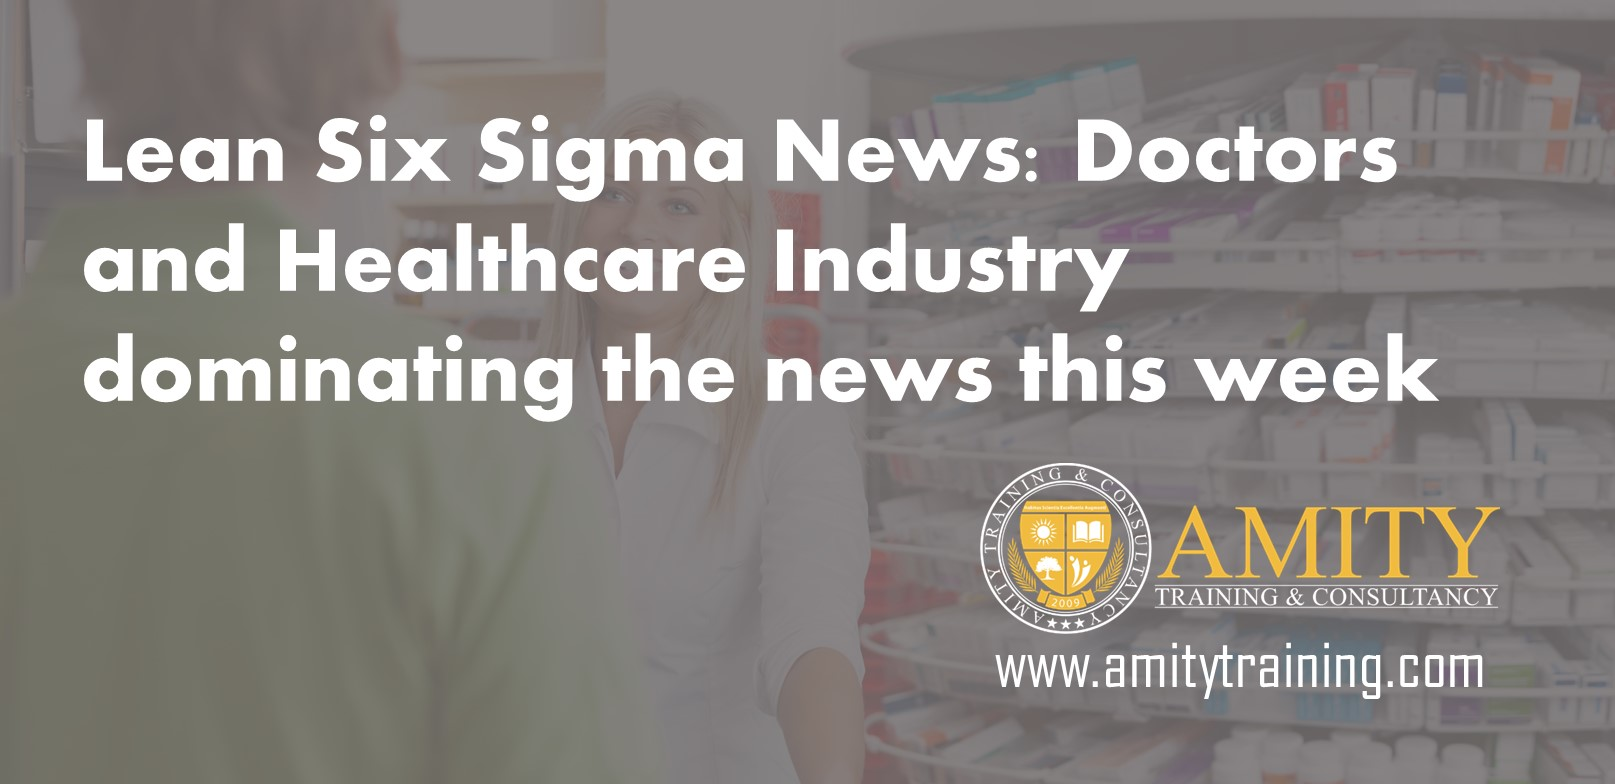 Lean Six Sigma News Doctors and Healthcare Industry dominating the news this week